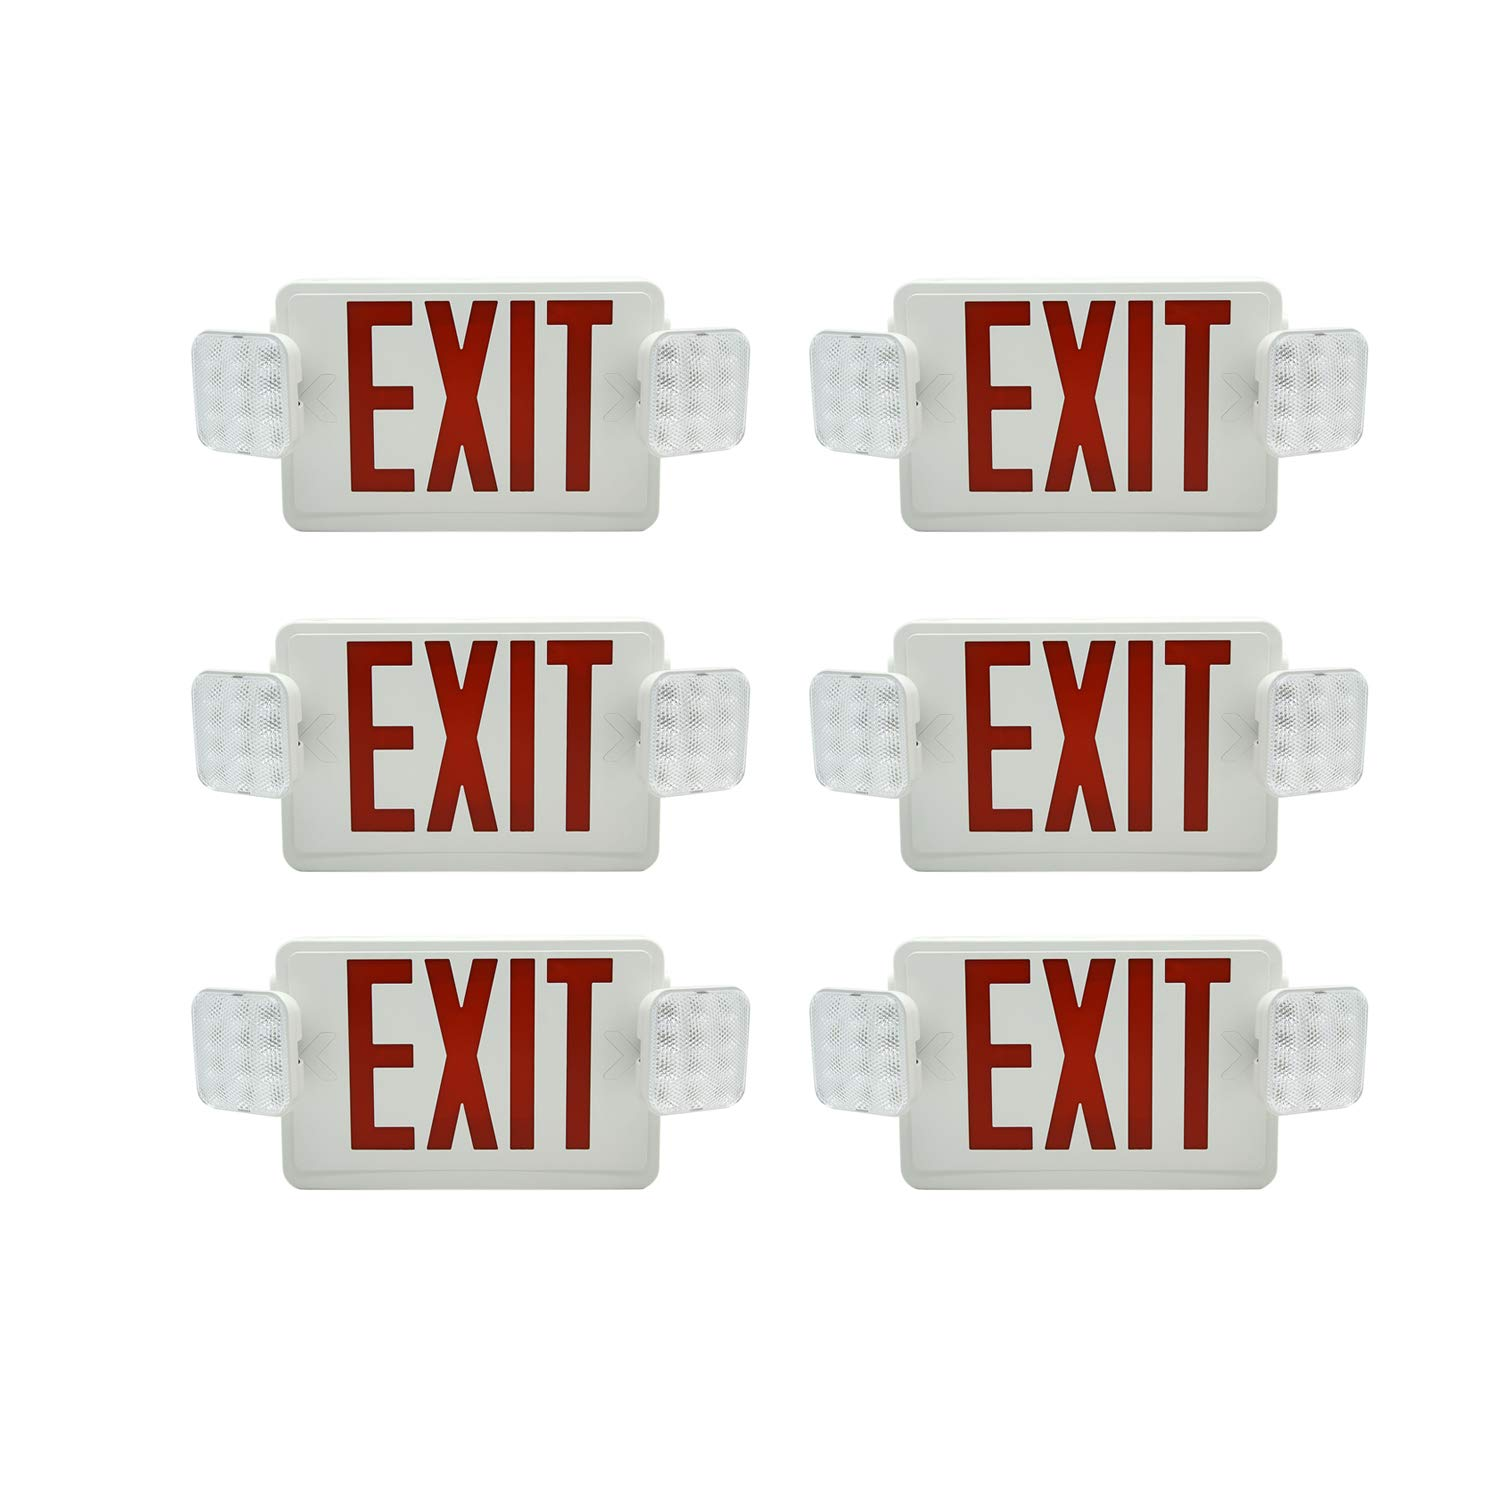 HYD-PARTS 6 Packs Emergency EXIT Sign LED Light Fixture Two Heads Fire Safety Lights Plus Back Up Battery Pack, Commercial, Fire Resistant, US Standard Red Letter - UL Listed (Red)